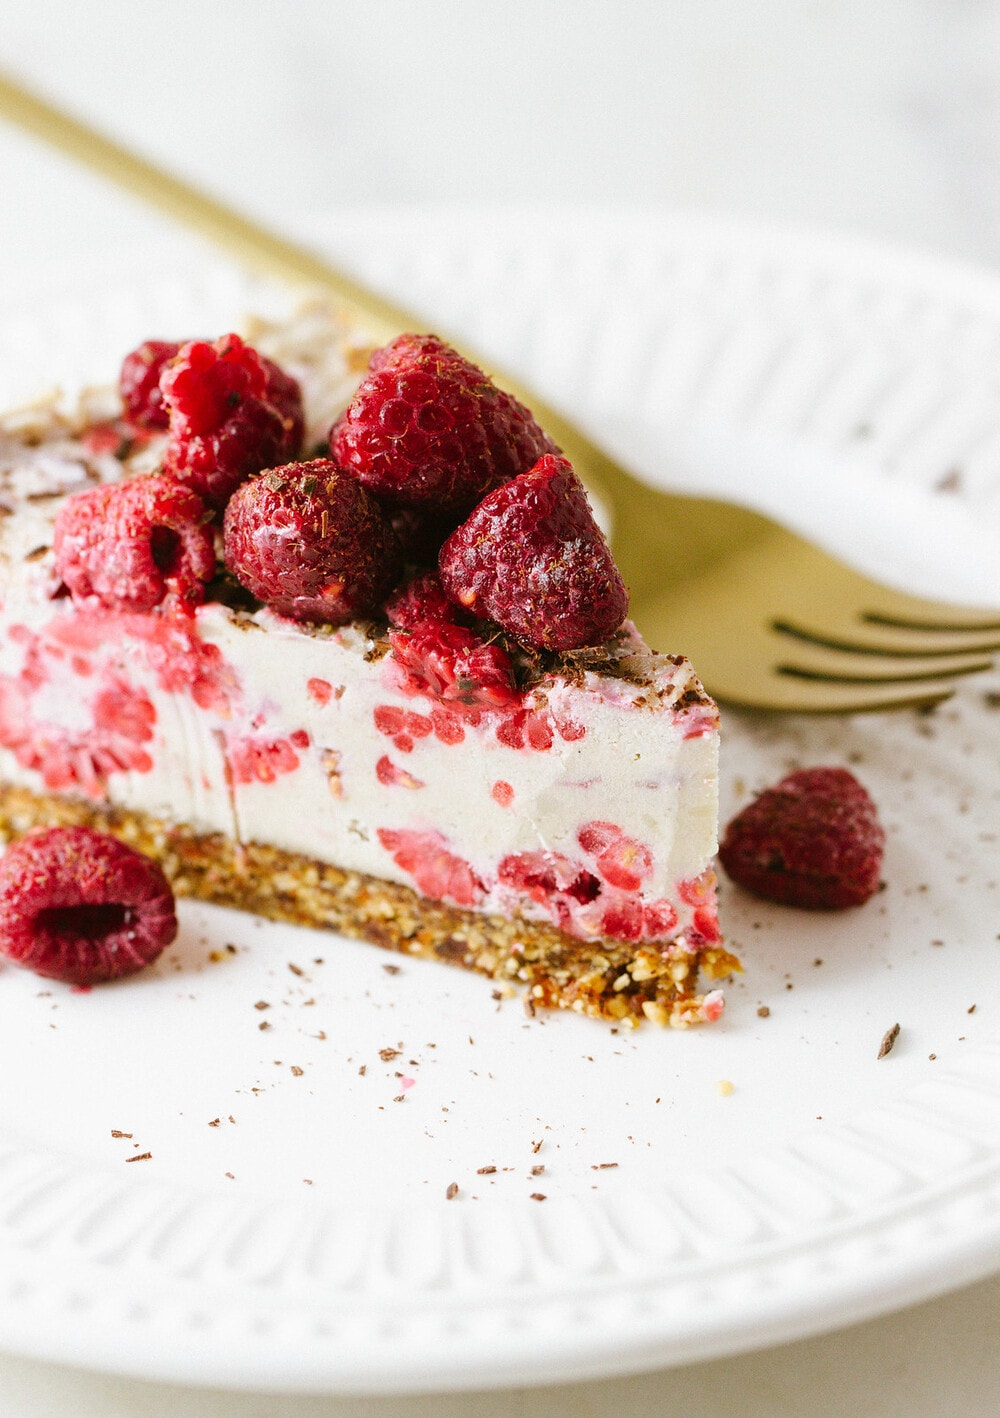 side angle view of a slice of vegan no bake raspberry vanilla cheesecake on a white plate with gold fork.